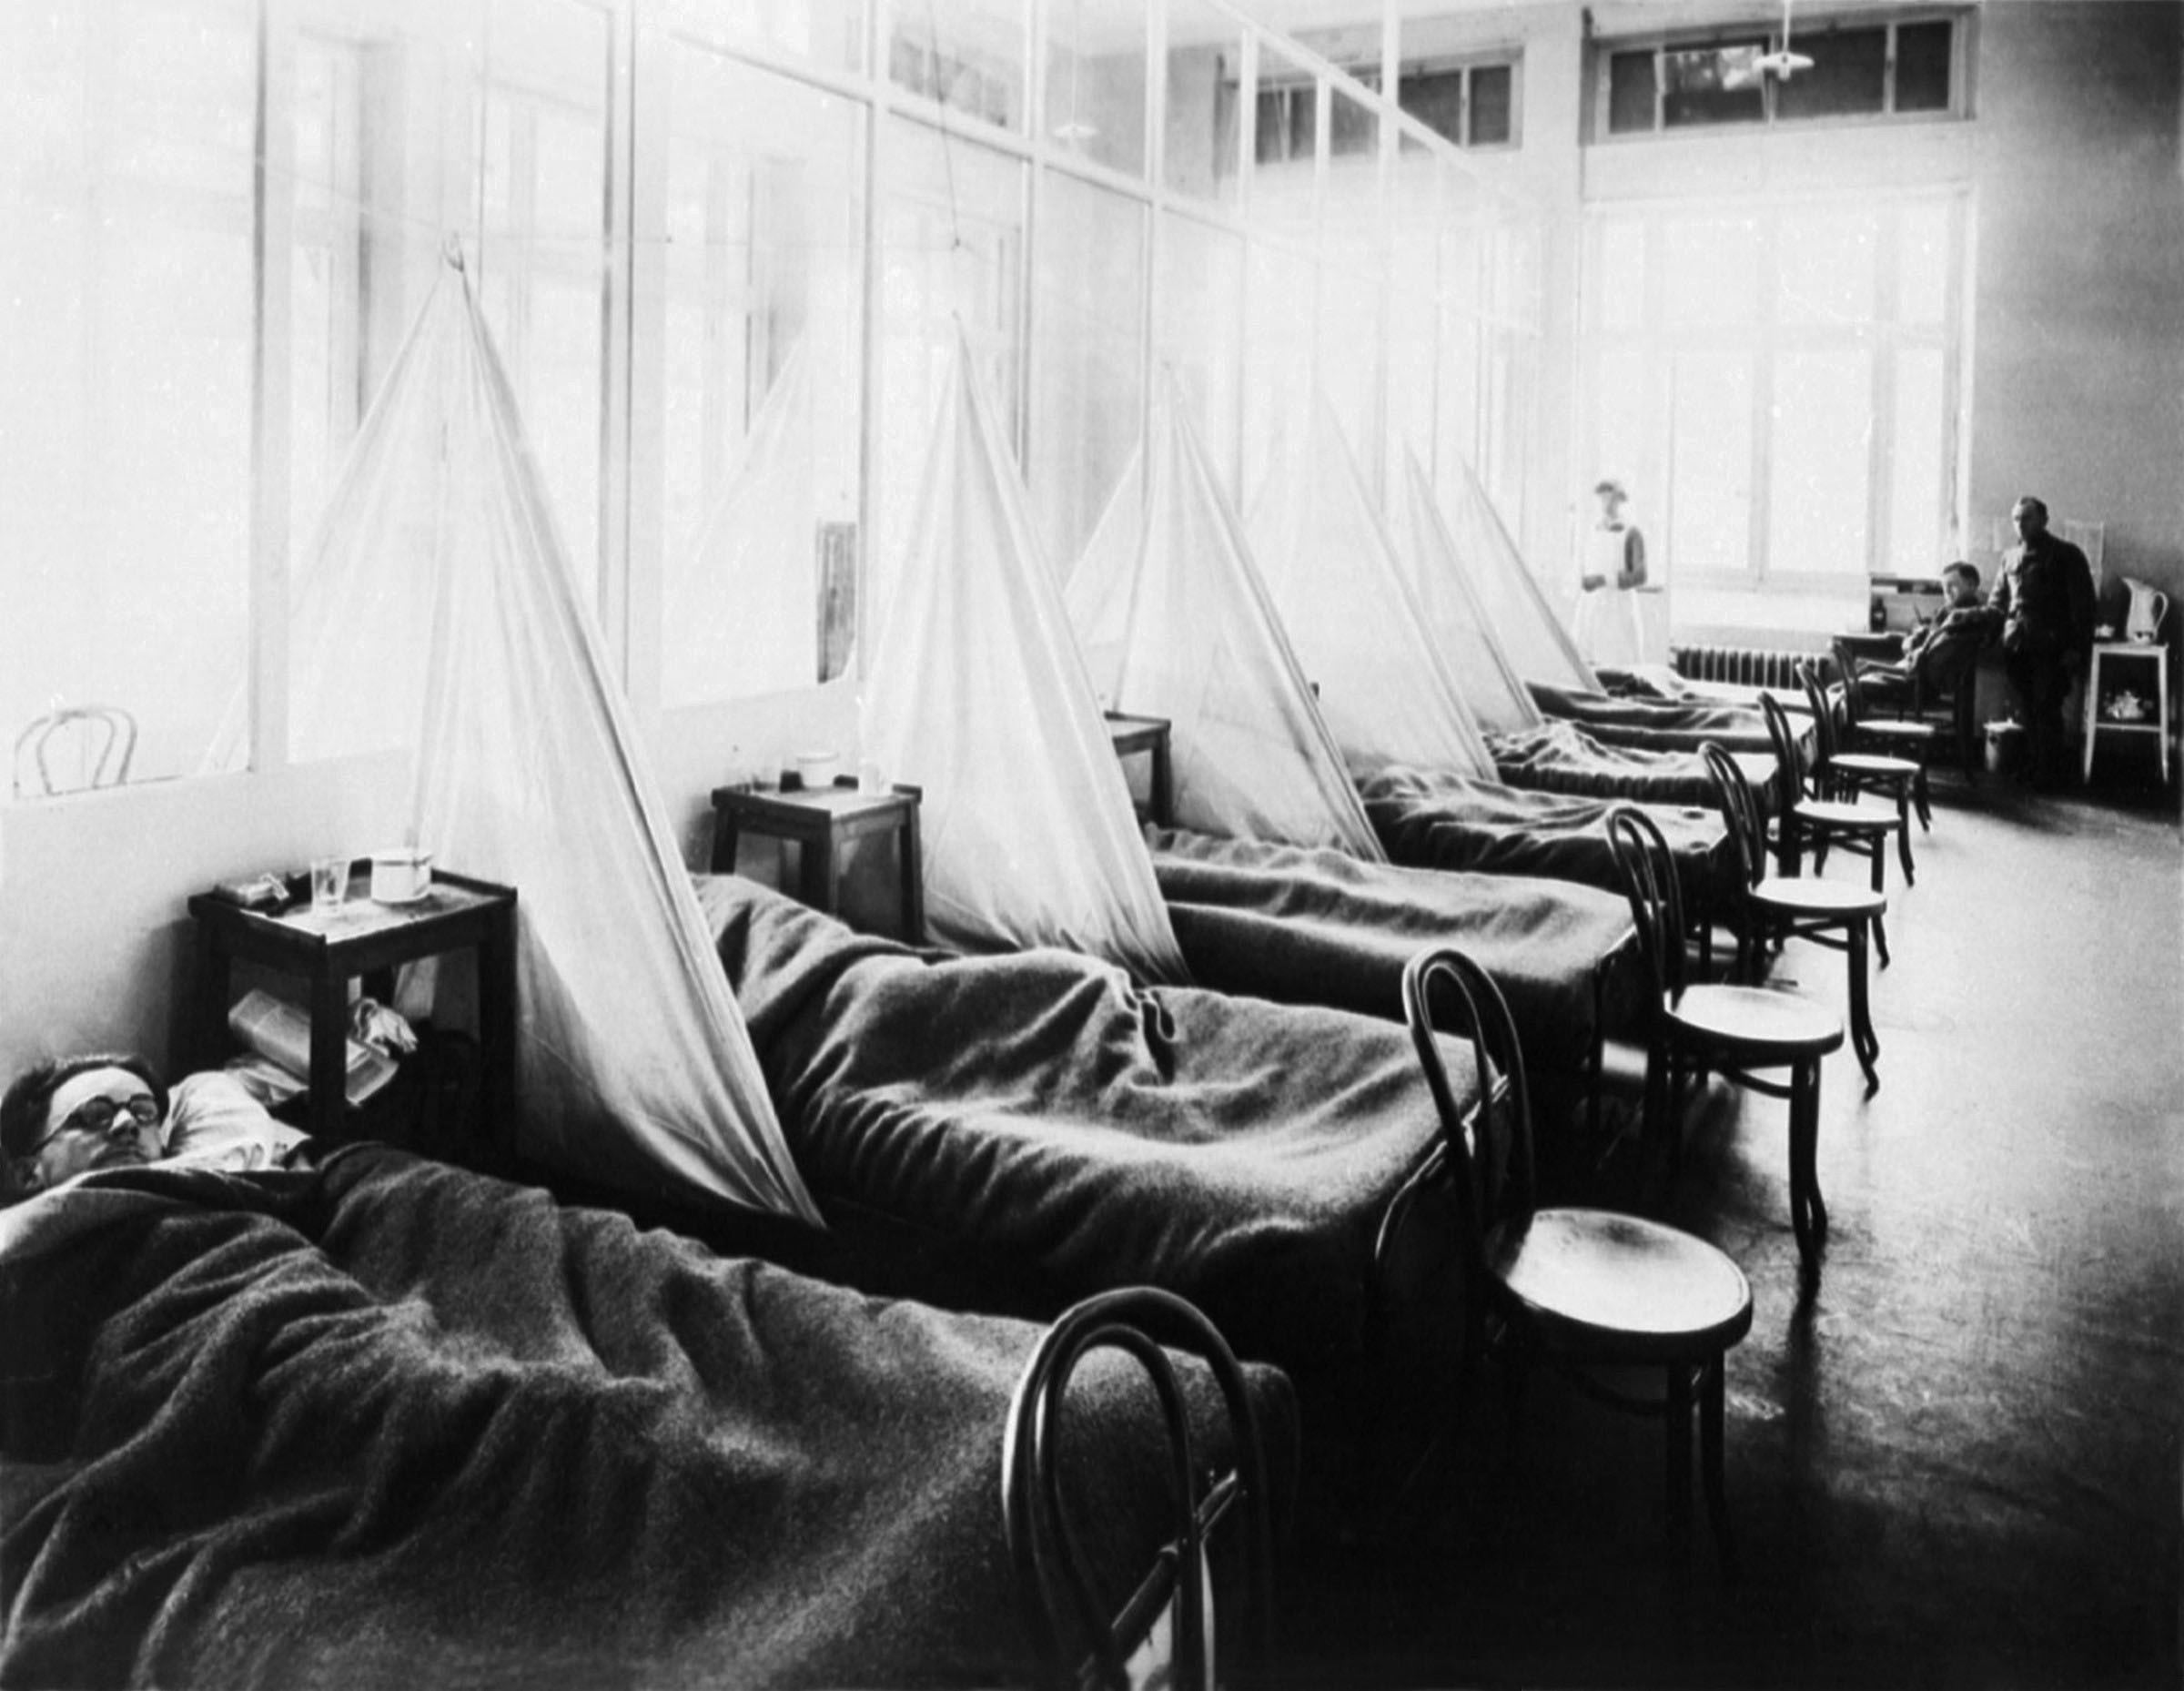 In his book, 'The Great Influenza', John M. Barry has summarized the events of the previous pandemic: the 1918 Spanish flu. Photo from Commons.Wikimedia.